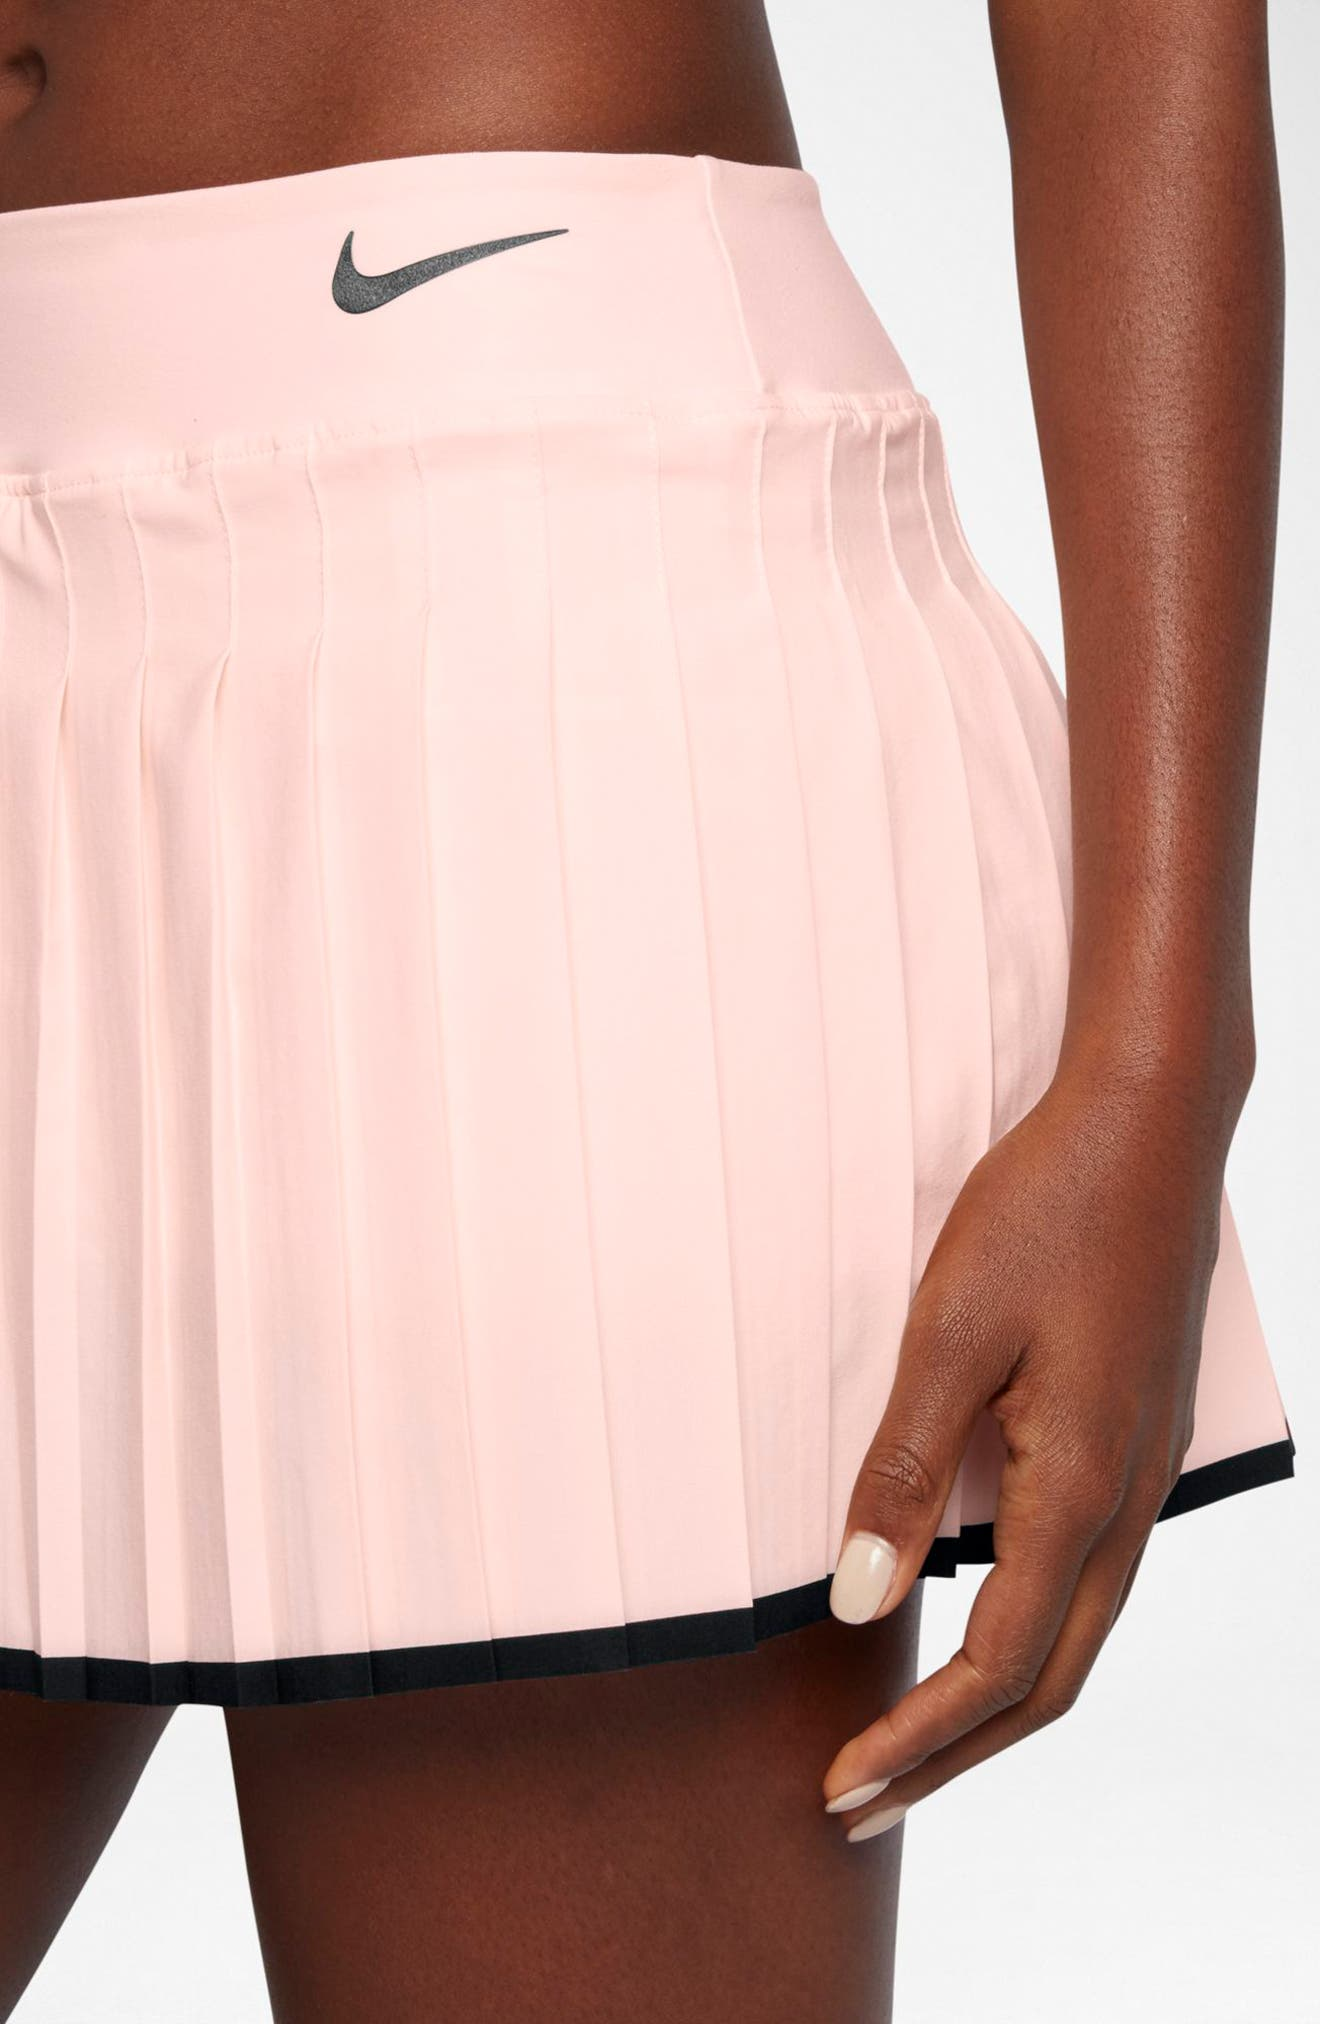 Women's Court Victory Tennis Skirt,                             Alternate thumbnail 6, color,                             959